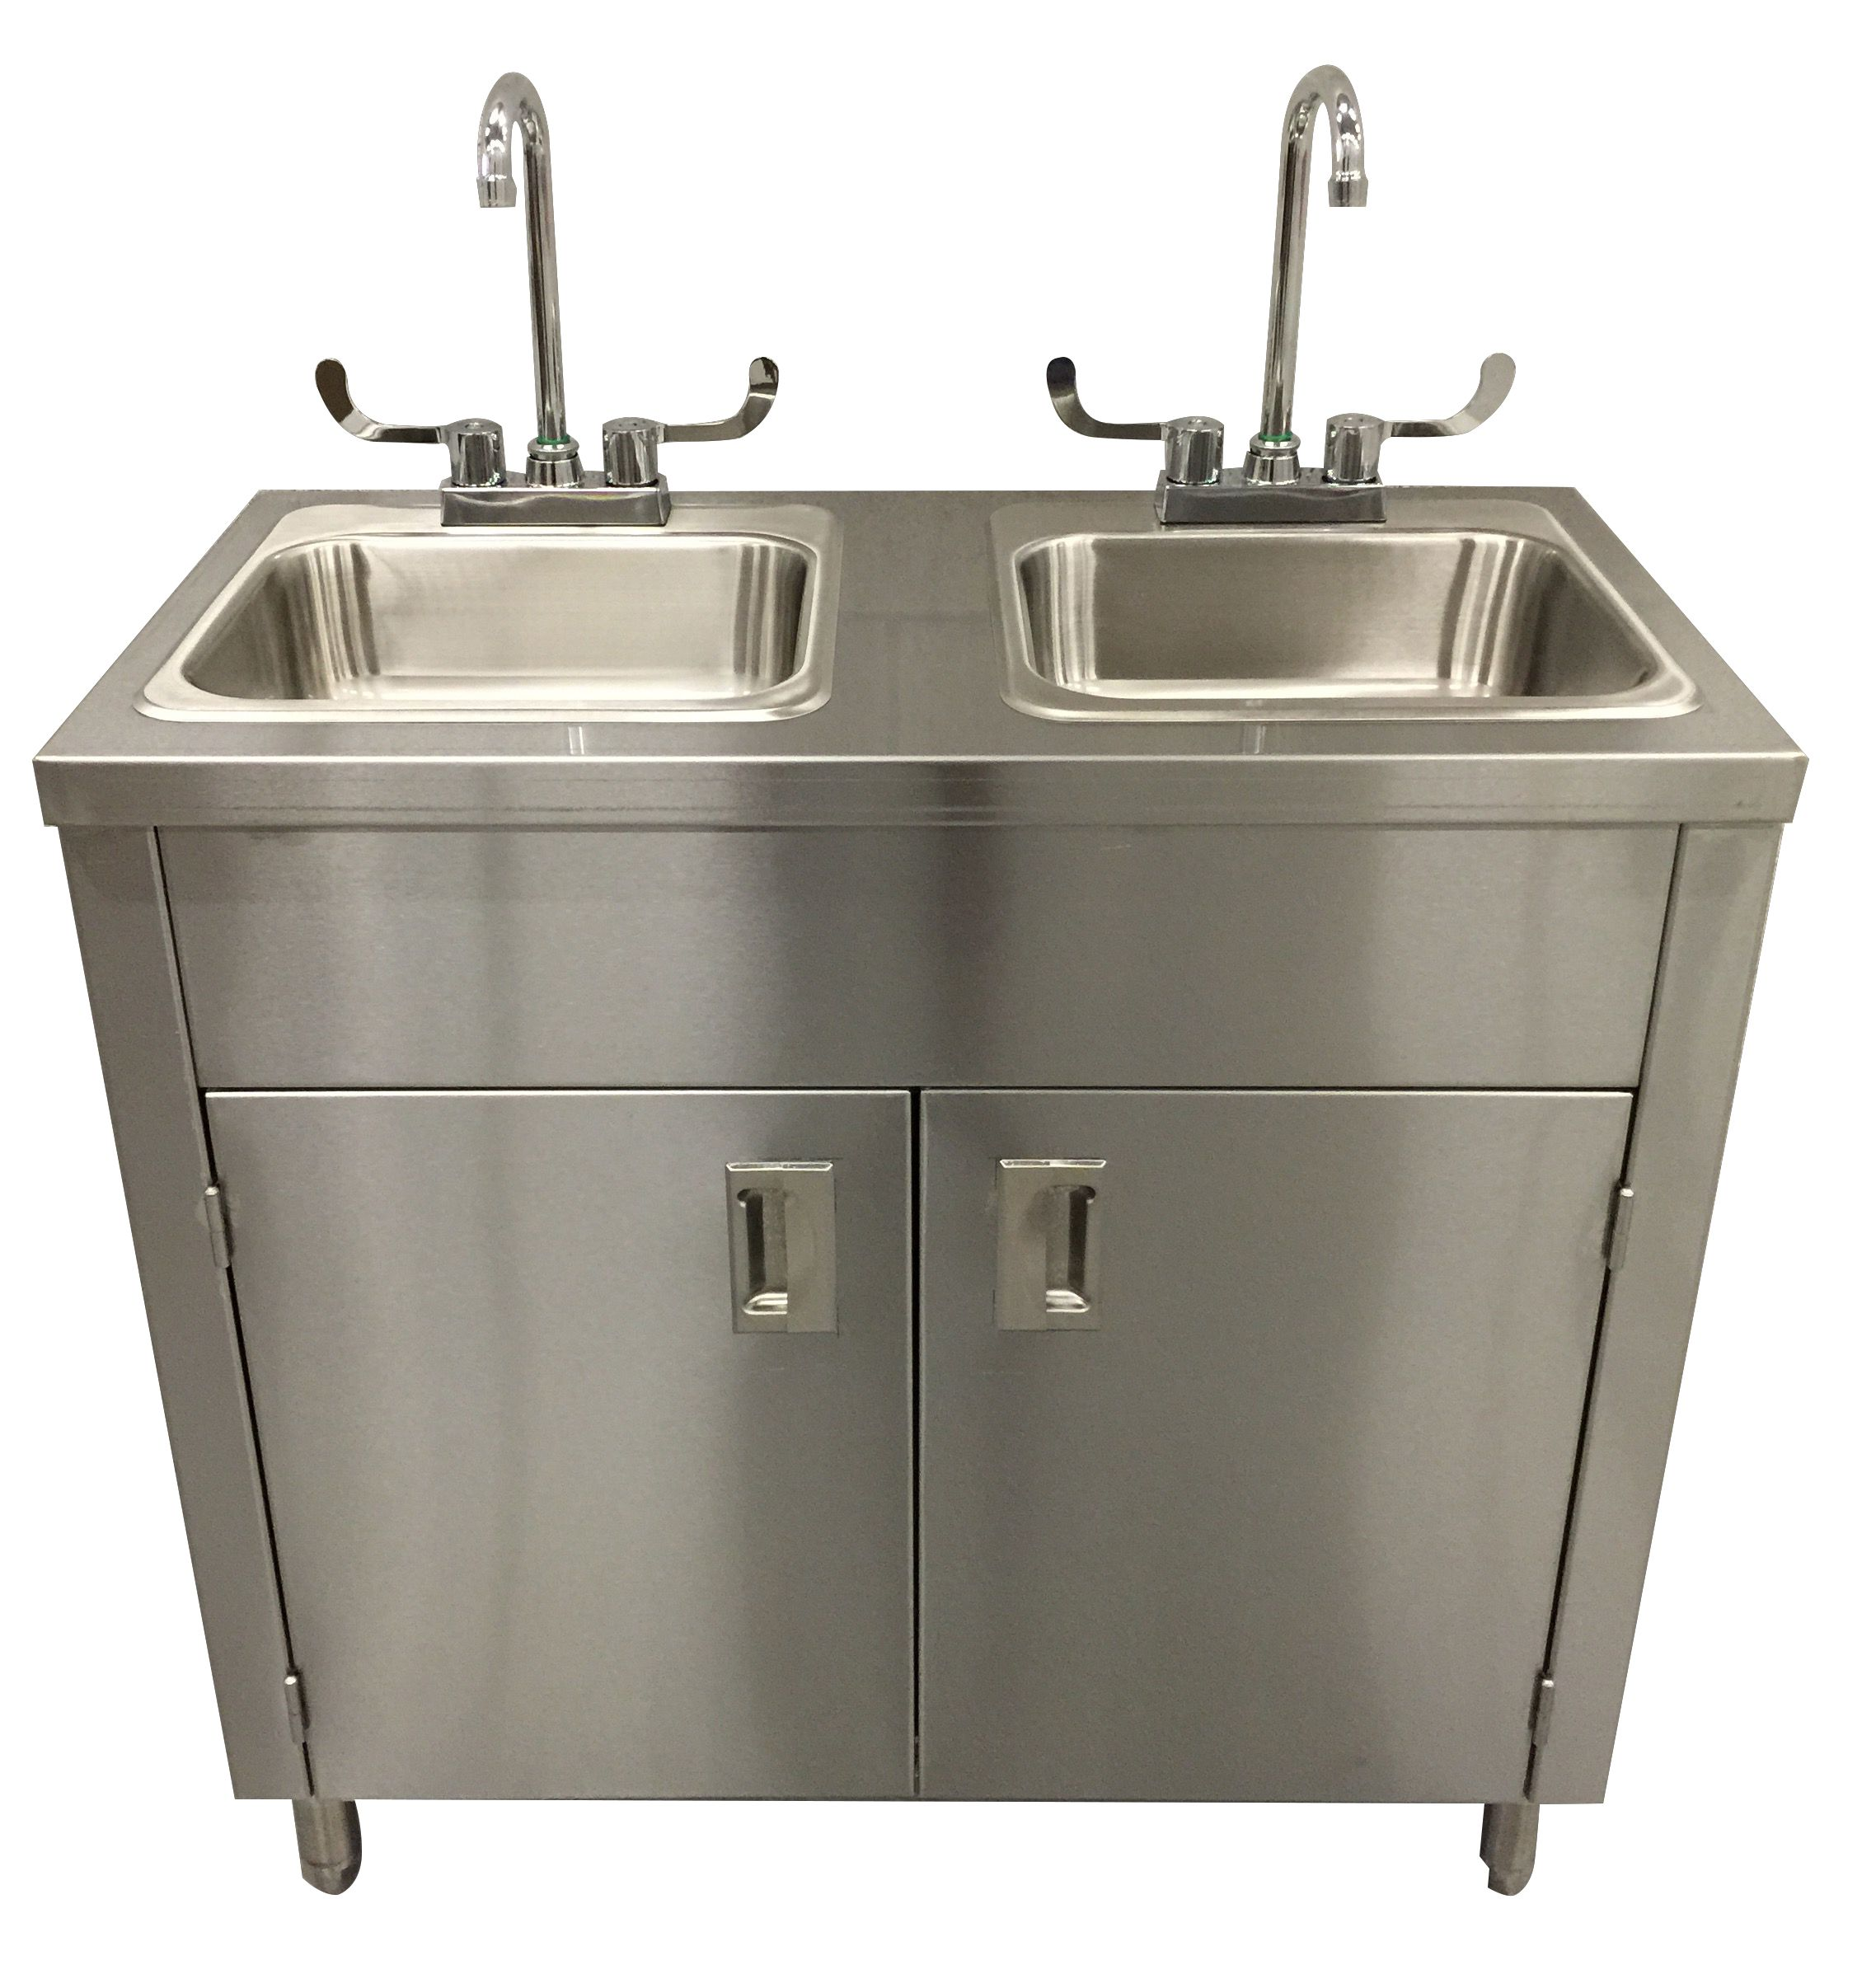 2 Compartment Portable Stainless Steel Sink In 2020 Portable Sink Sink Stainless Steel Sinks